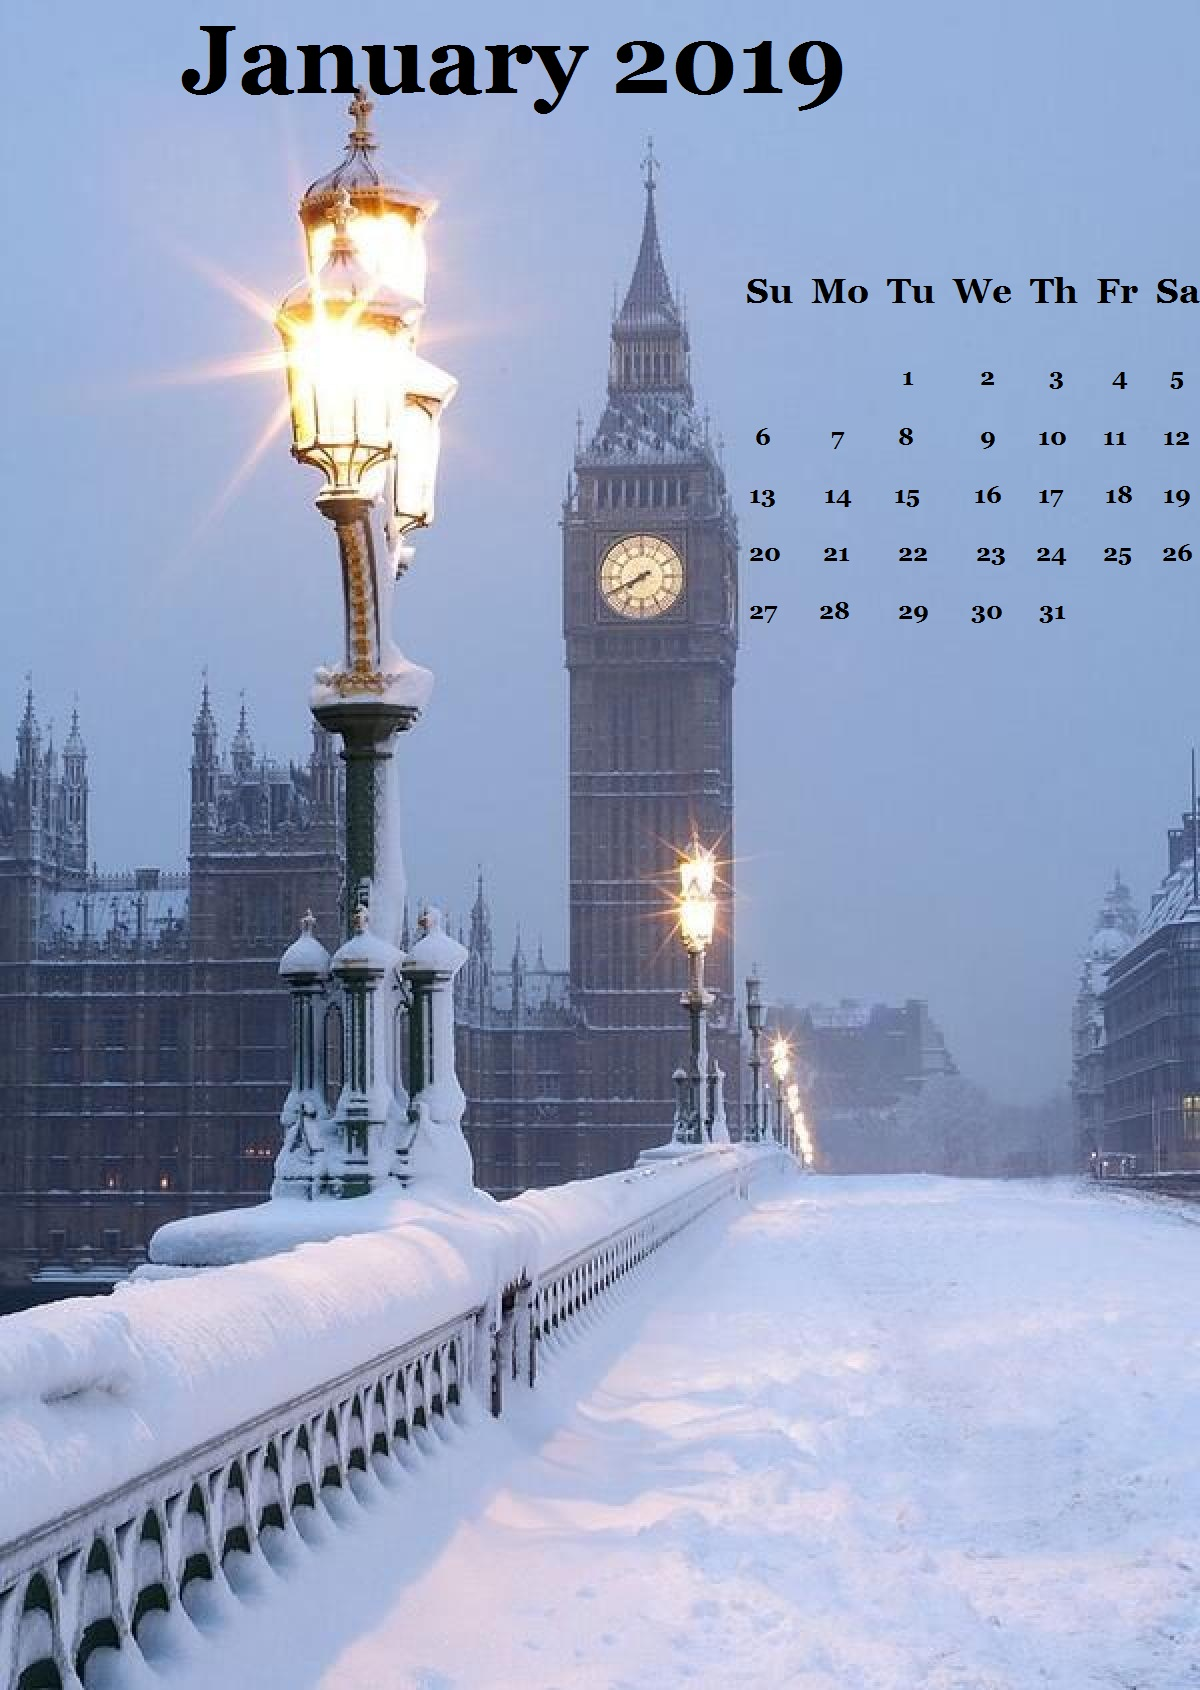 winter London snow January 2019 iPhone Calendar